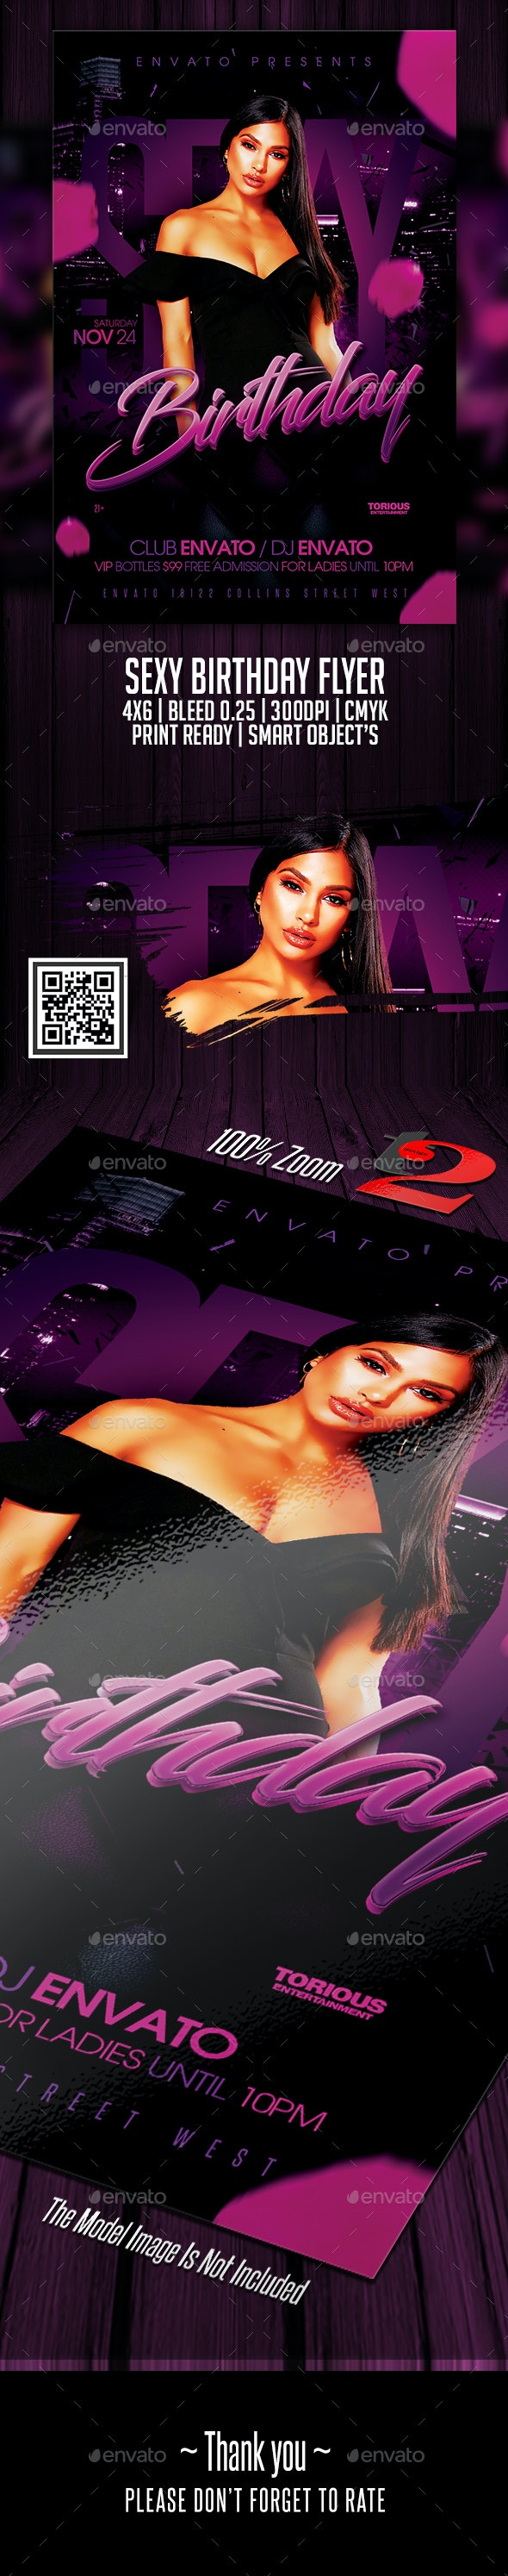 Sexy Birthday Flyer Template - Clubs & Parties Events